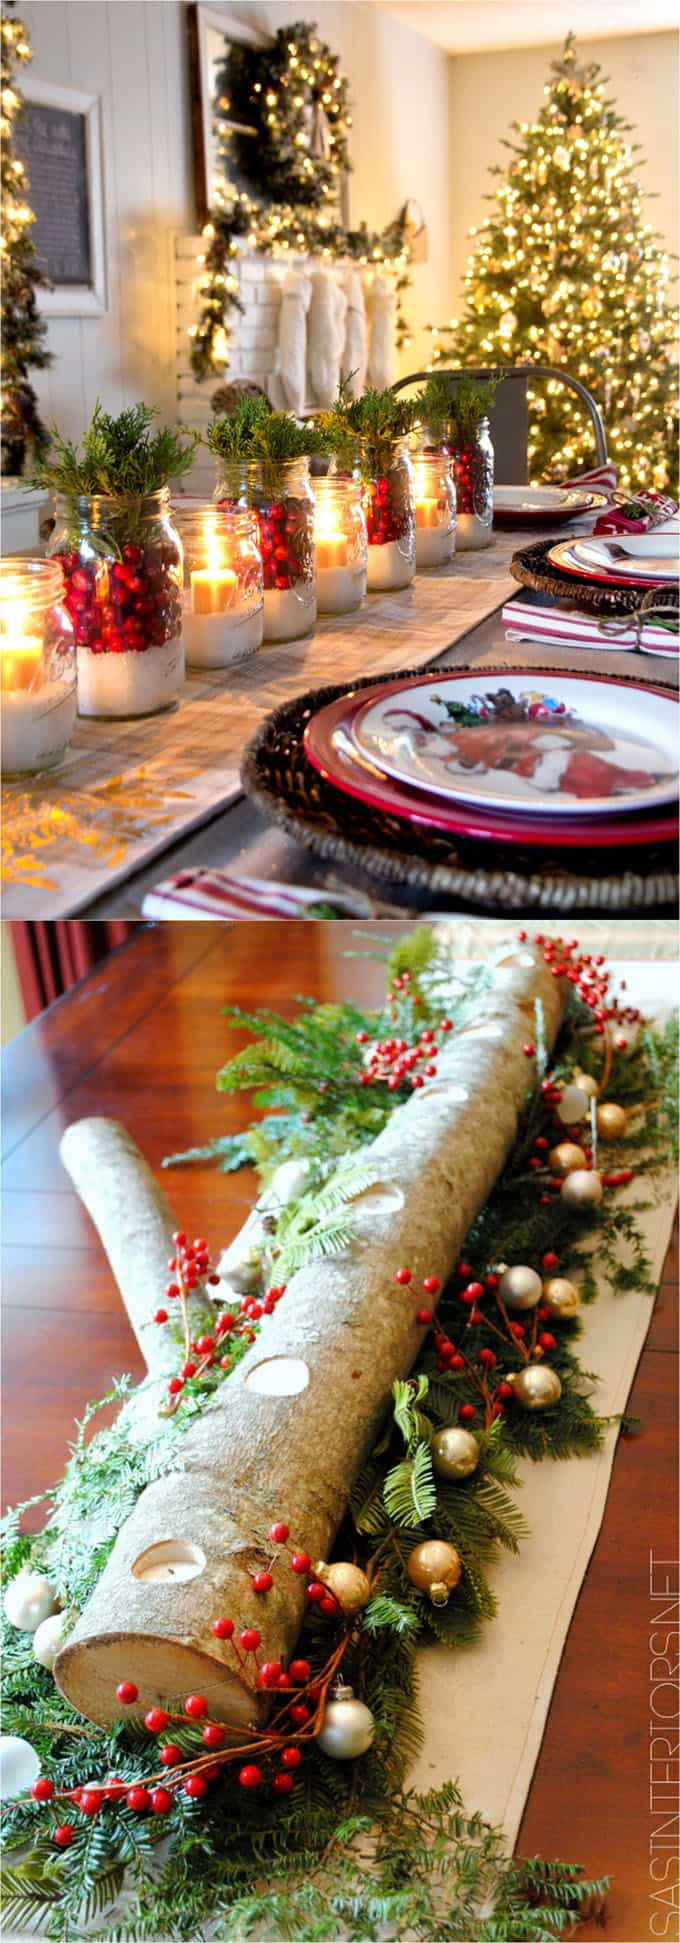 DIY Christmas centerpiece with candles and red berries